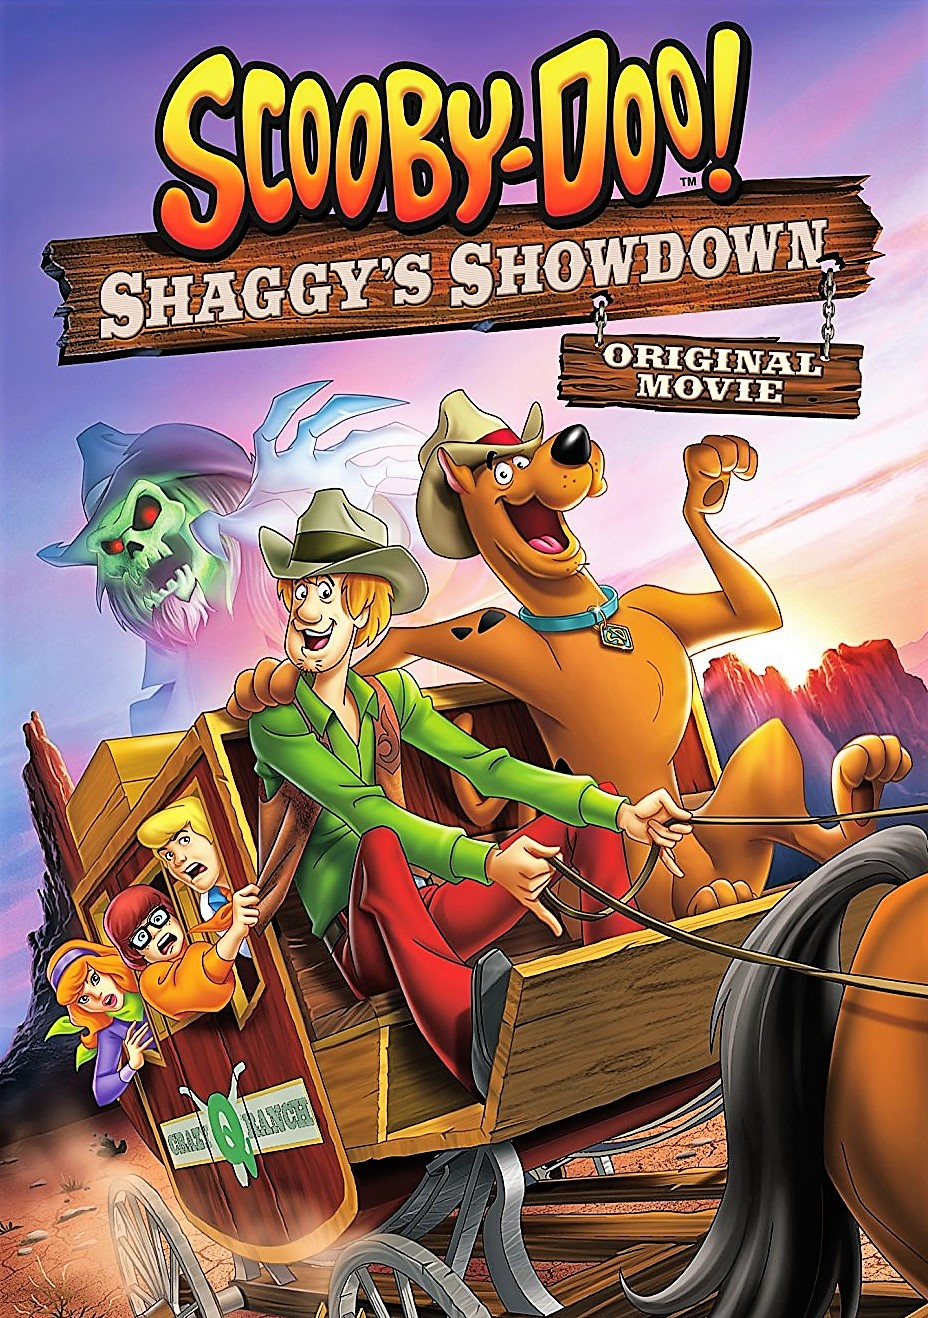 Scooby-Doo! Shaggy's Showdown (Video 2017) - IMDb